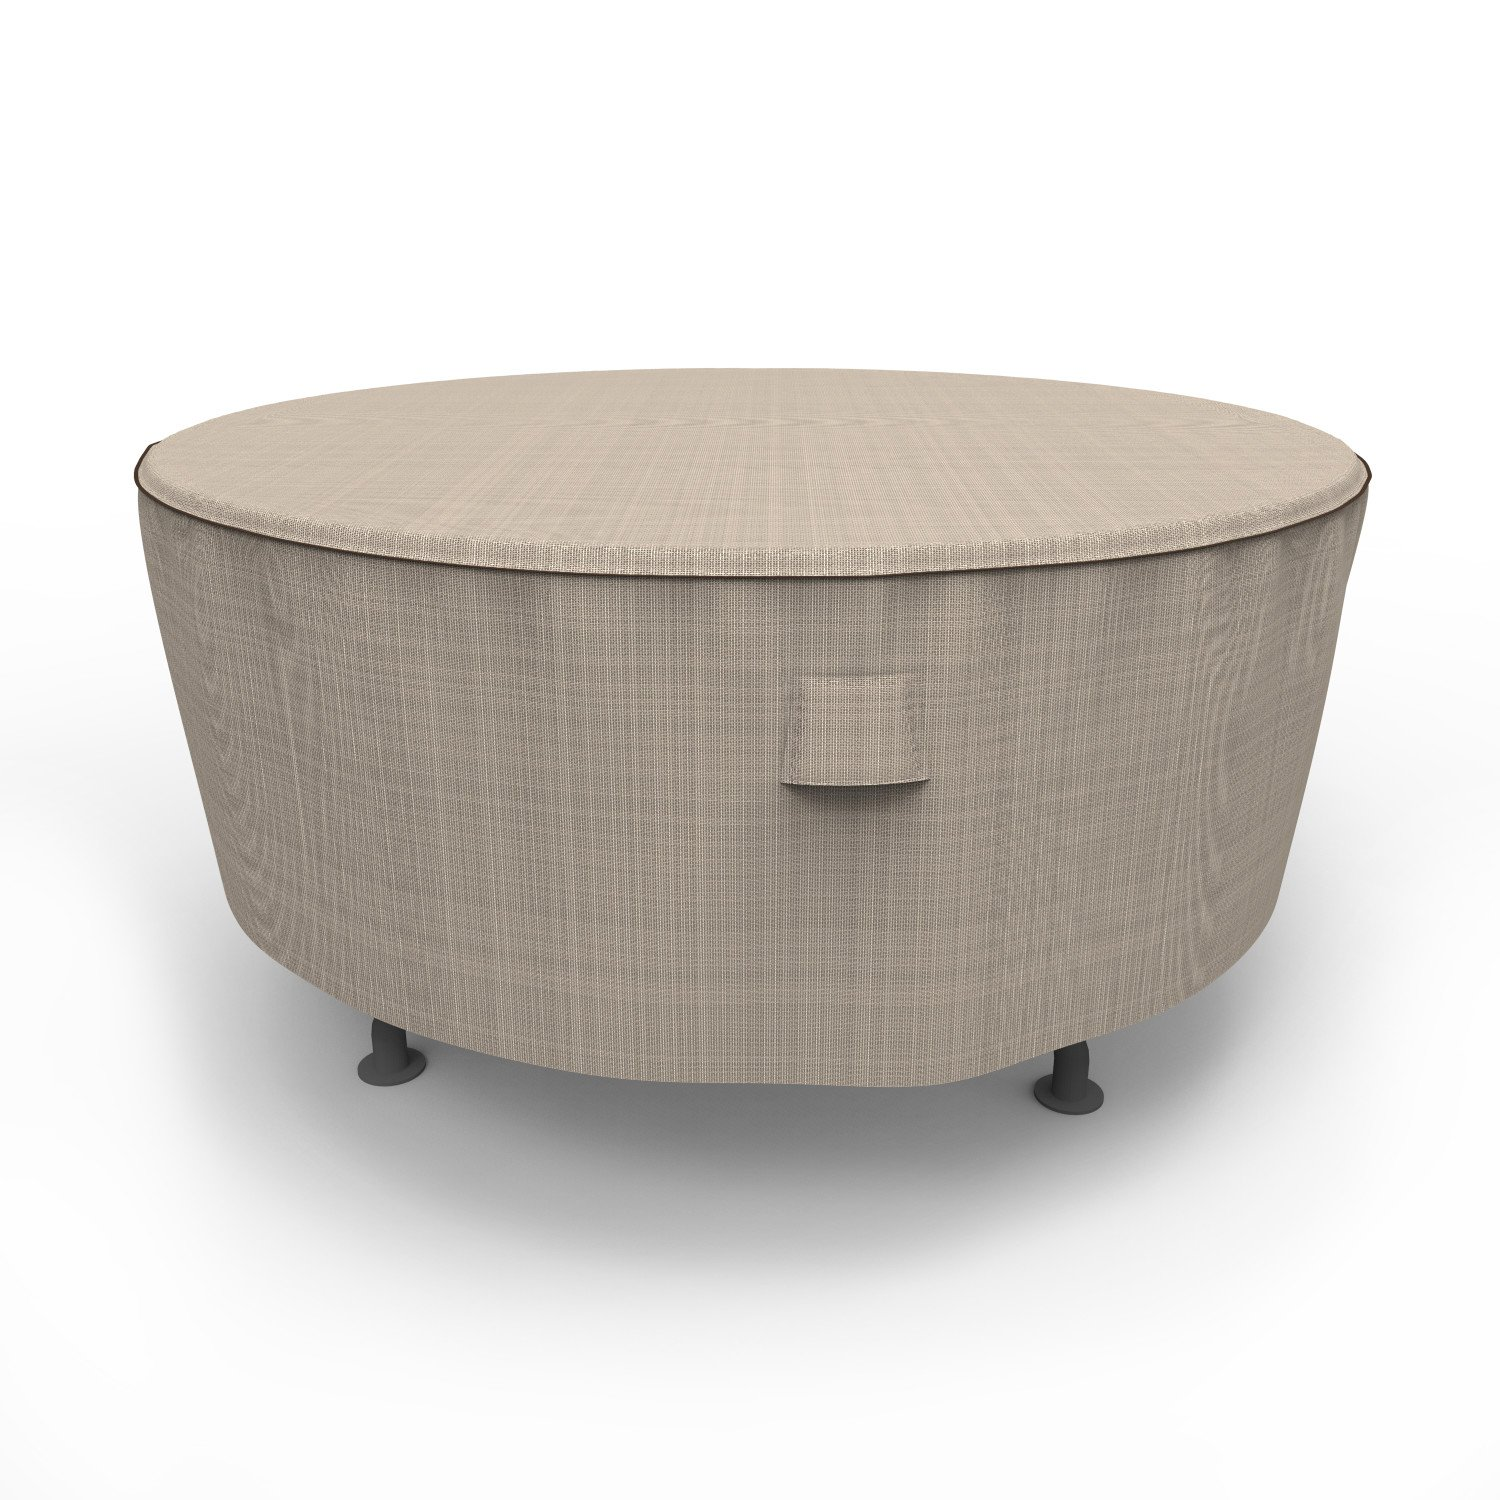 Budge P5A23PM1 English Garden Round Patio Table Cover, Large, Two-Tone Tan by Budge